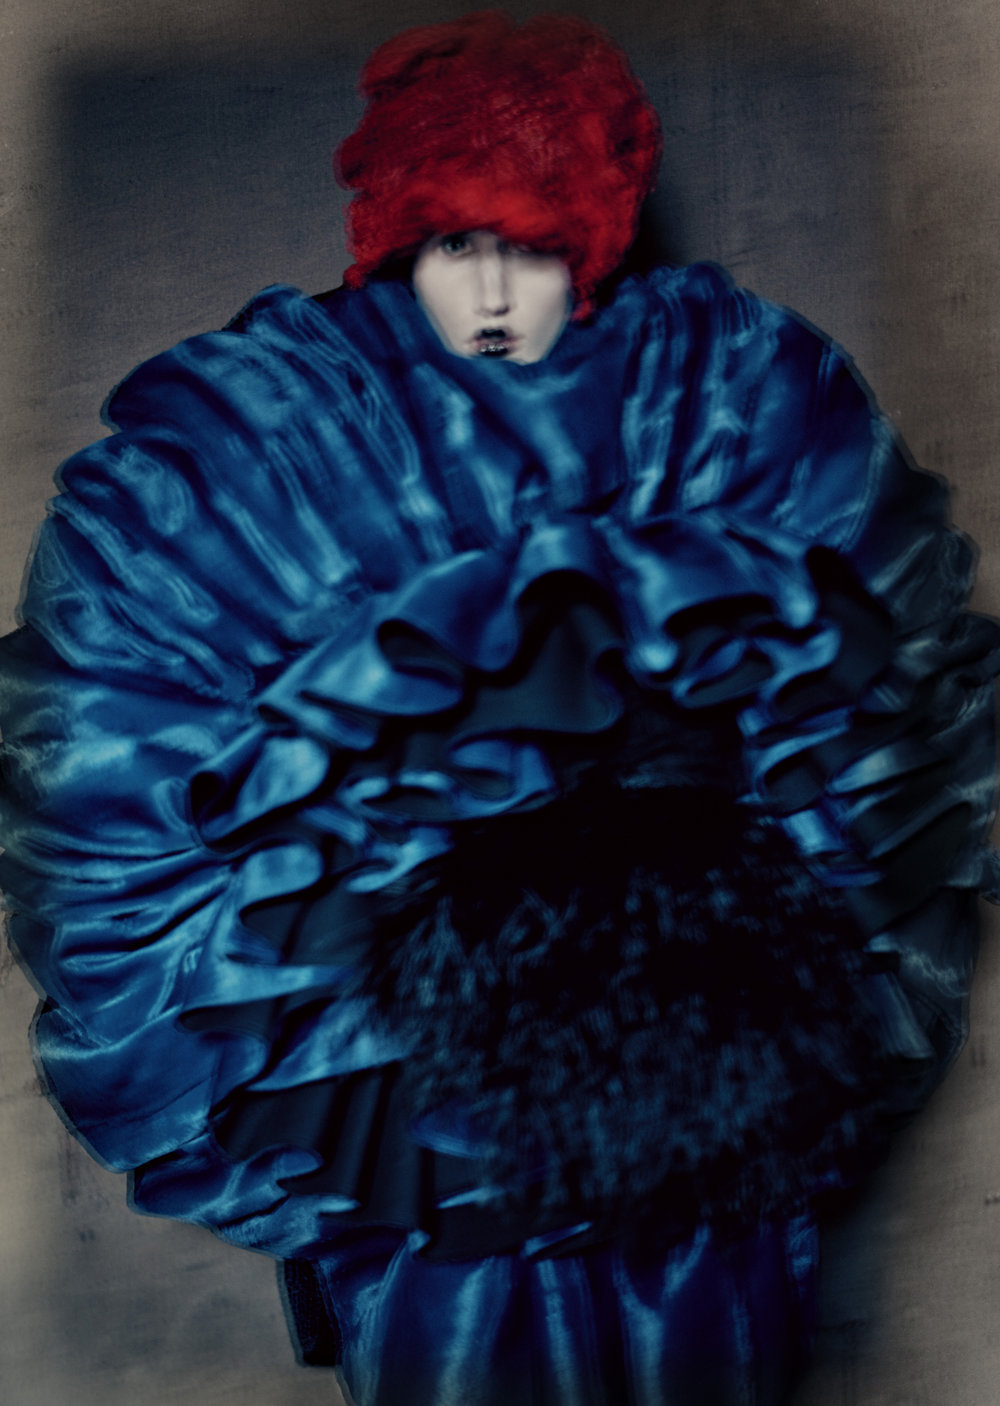 Rei Kawakubo (Japanese, born 1942) for Comme des Garçons  (Japanese, founded 1969). Blue Witch, spring/summer 2016.  Photograph by © Paolo Roversi; Courtesy of The Metropolitan  Museum of Art